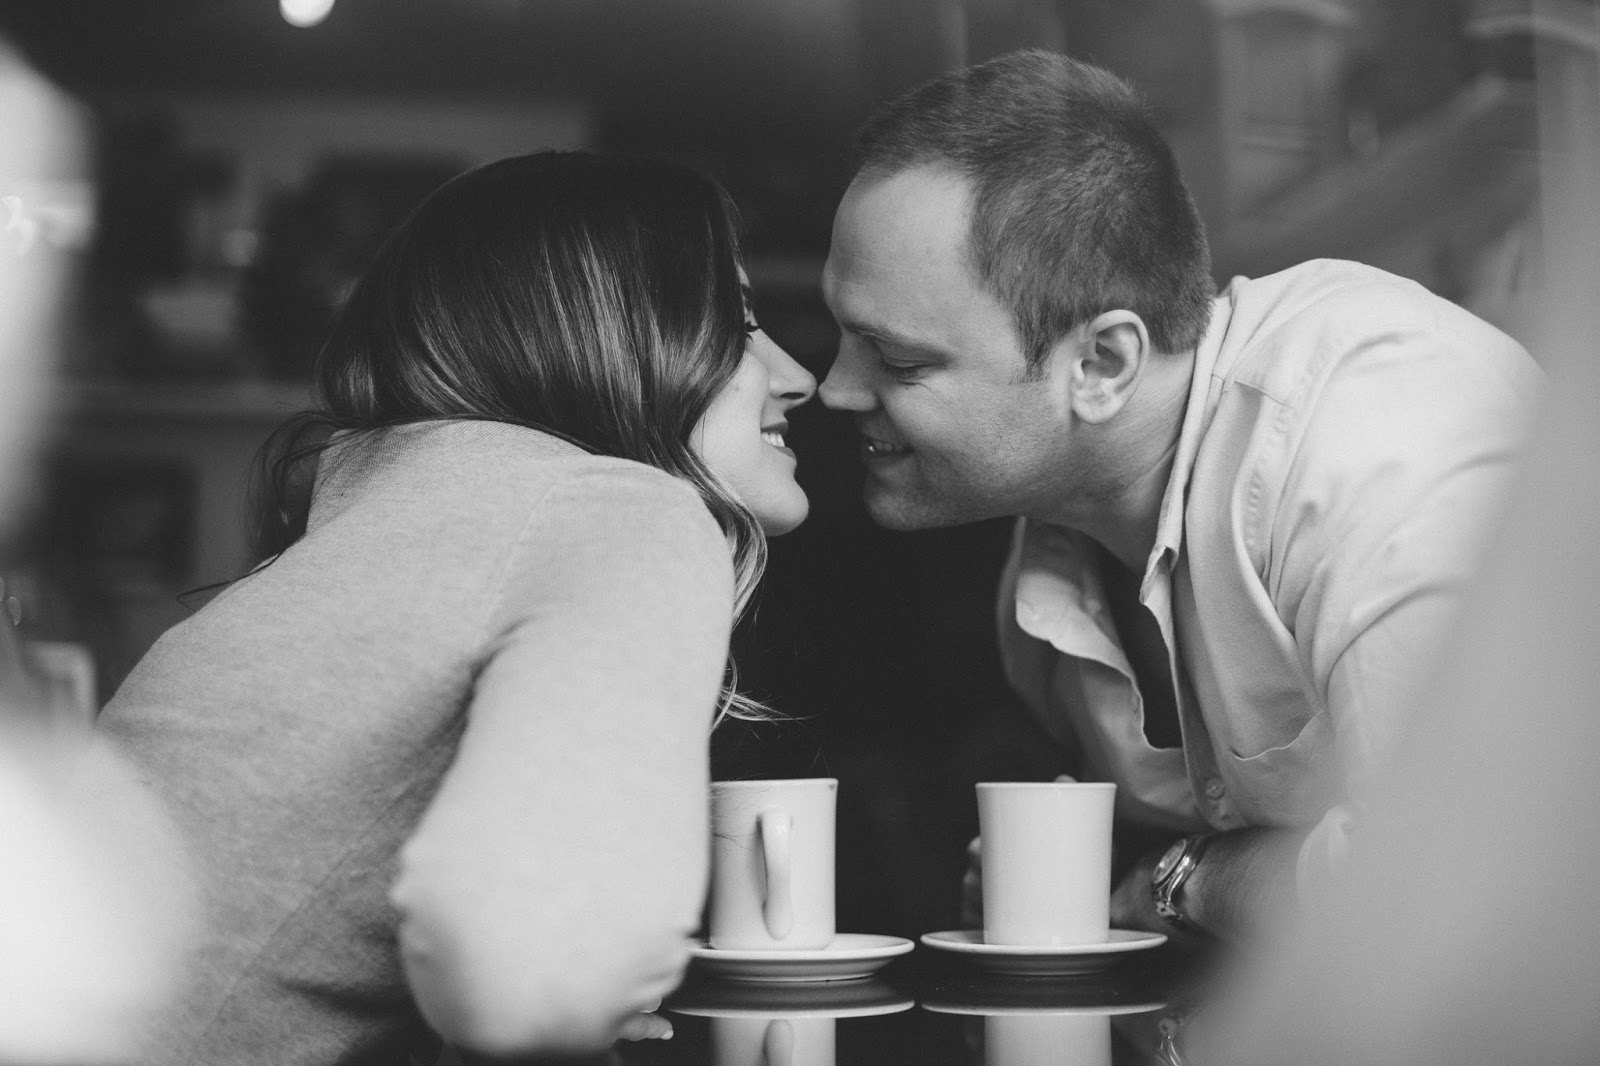 Cafe engagement shoot Hoboken New Jersey | Documentary wedding photographer - blog.cassiecastellaw.com